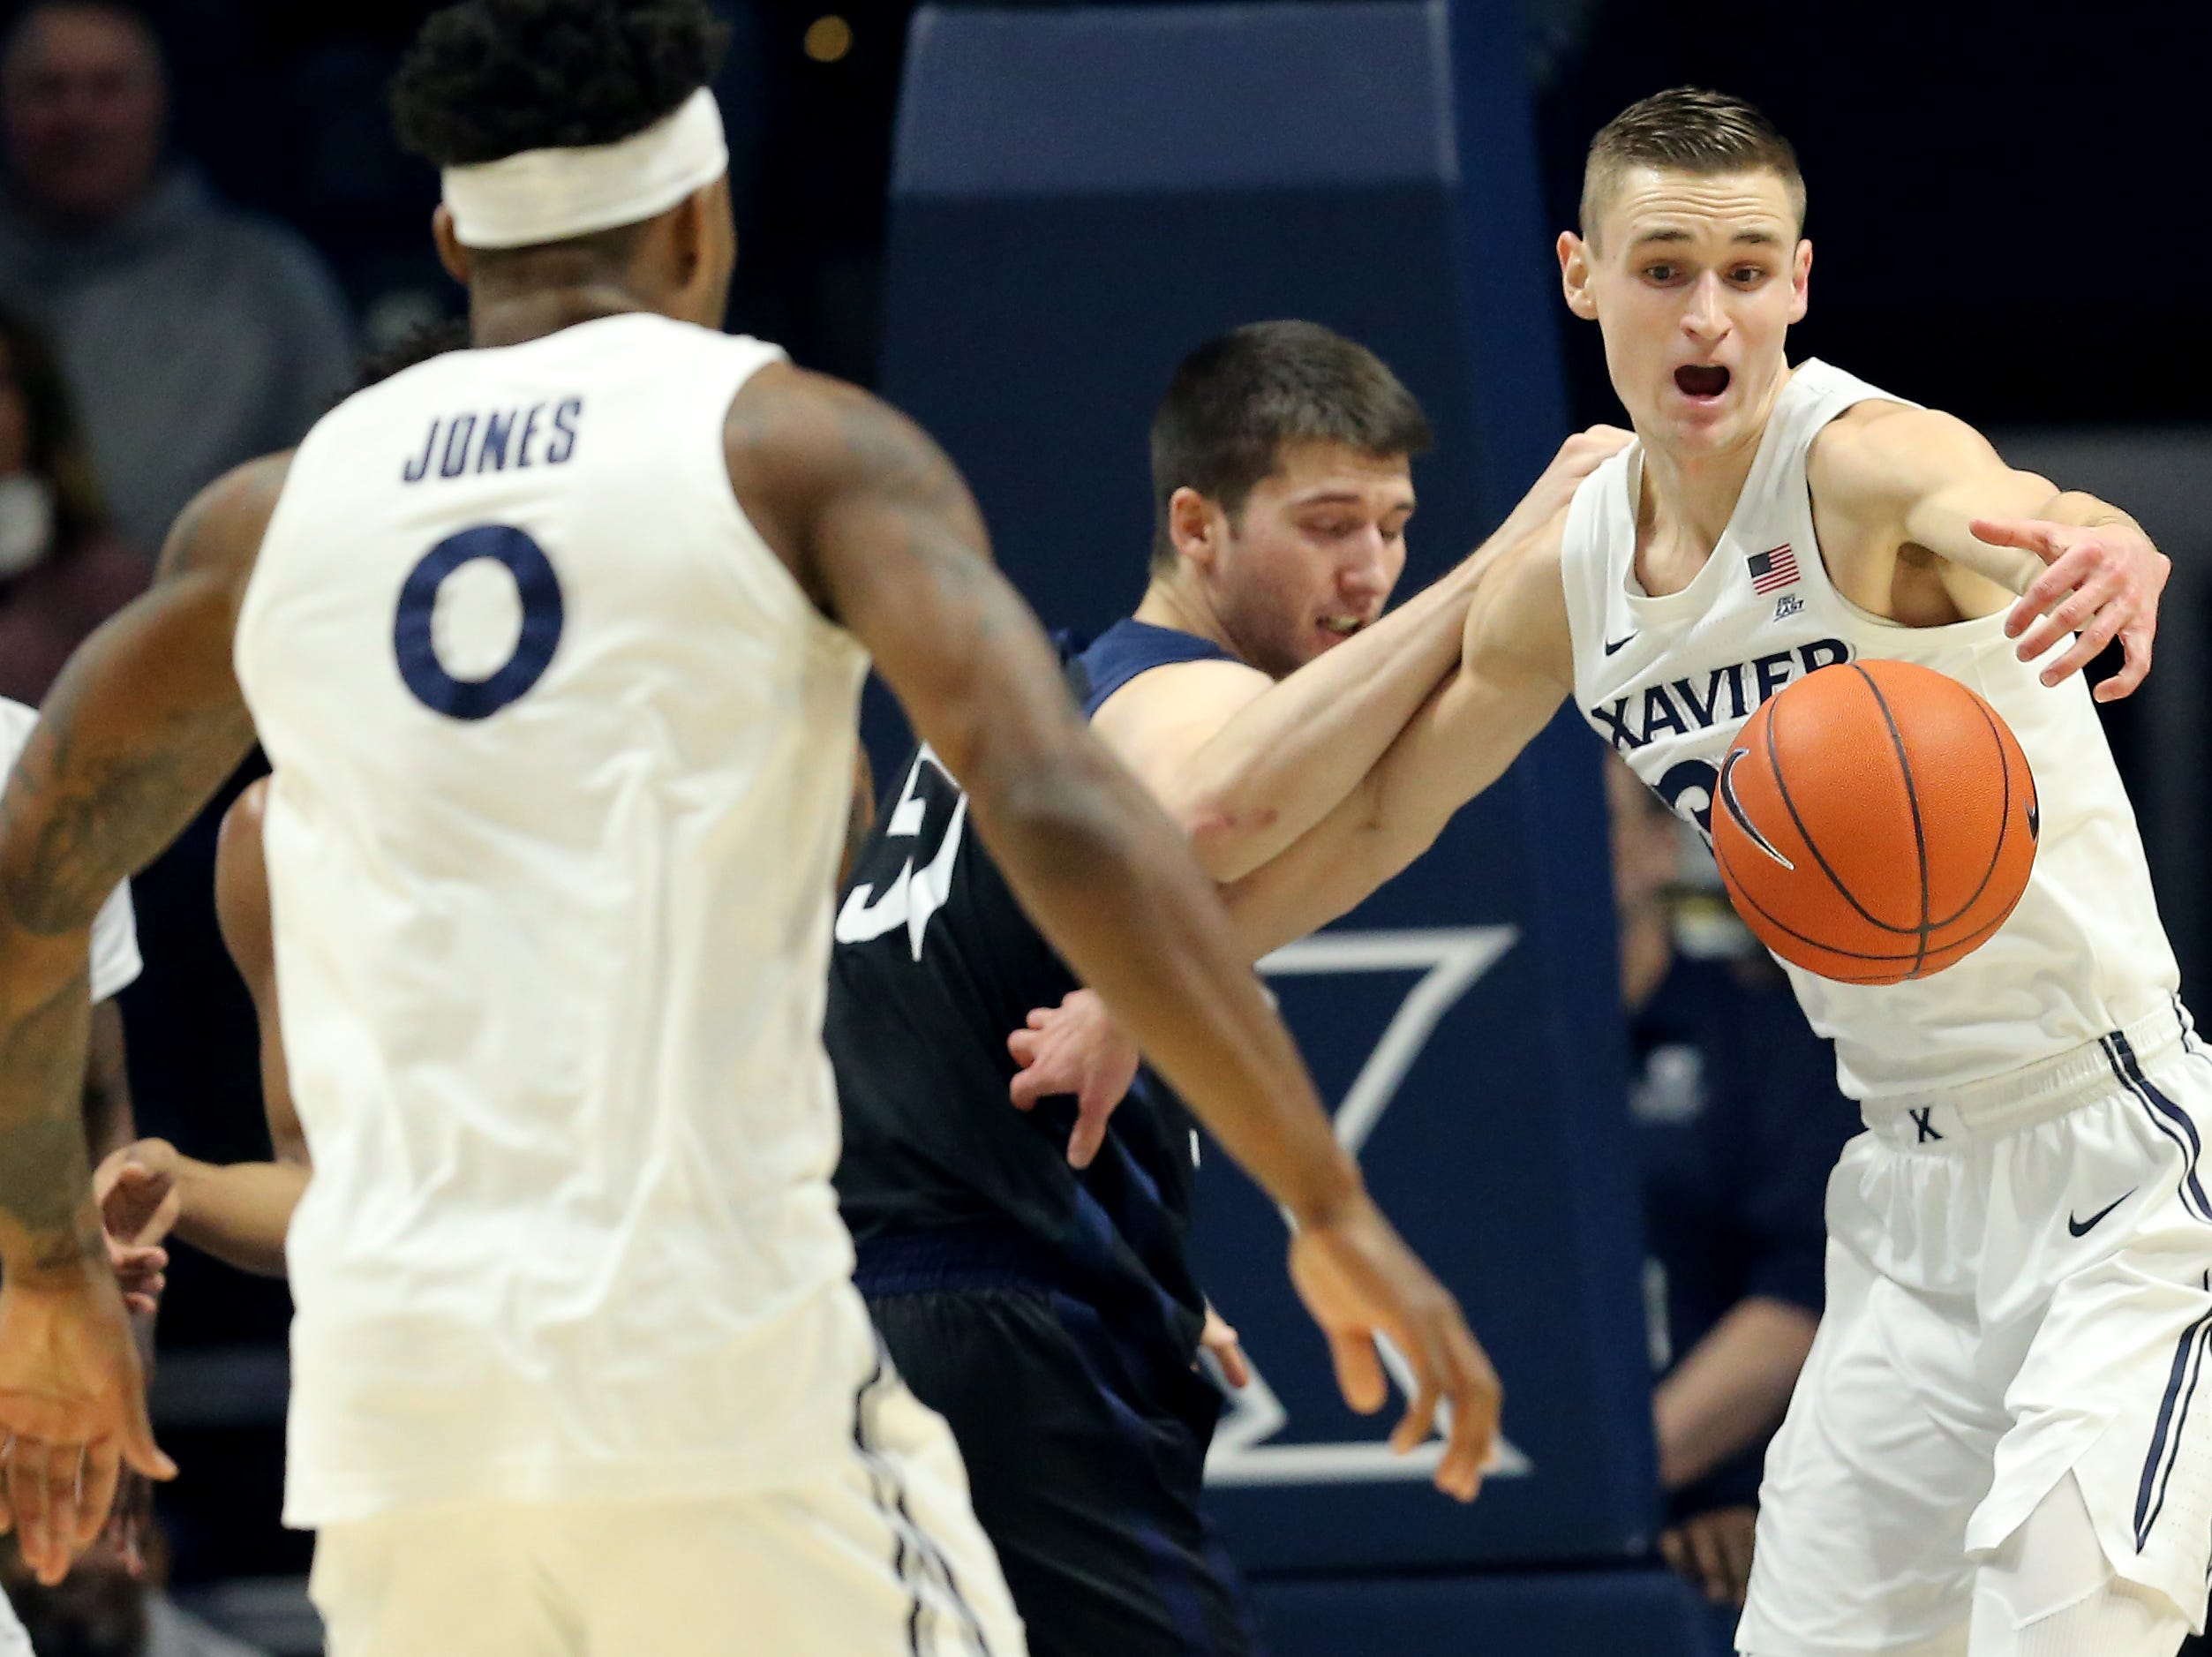 Xavier Musketeers forward Ryan Welage (32) eyes a loose ball in the first half of an NCAA college basketball game against the Butler Bulldogs, Sunday, Jan. 13, 2019, at Cintas Center in Cincinnati.